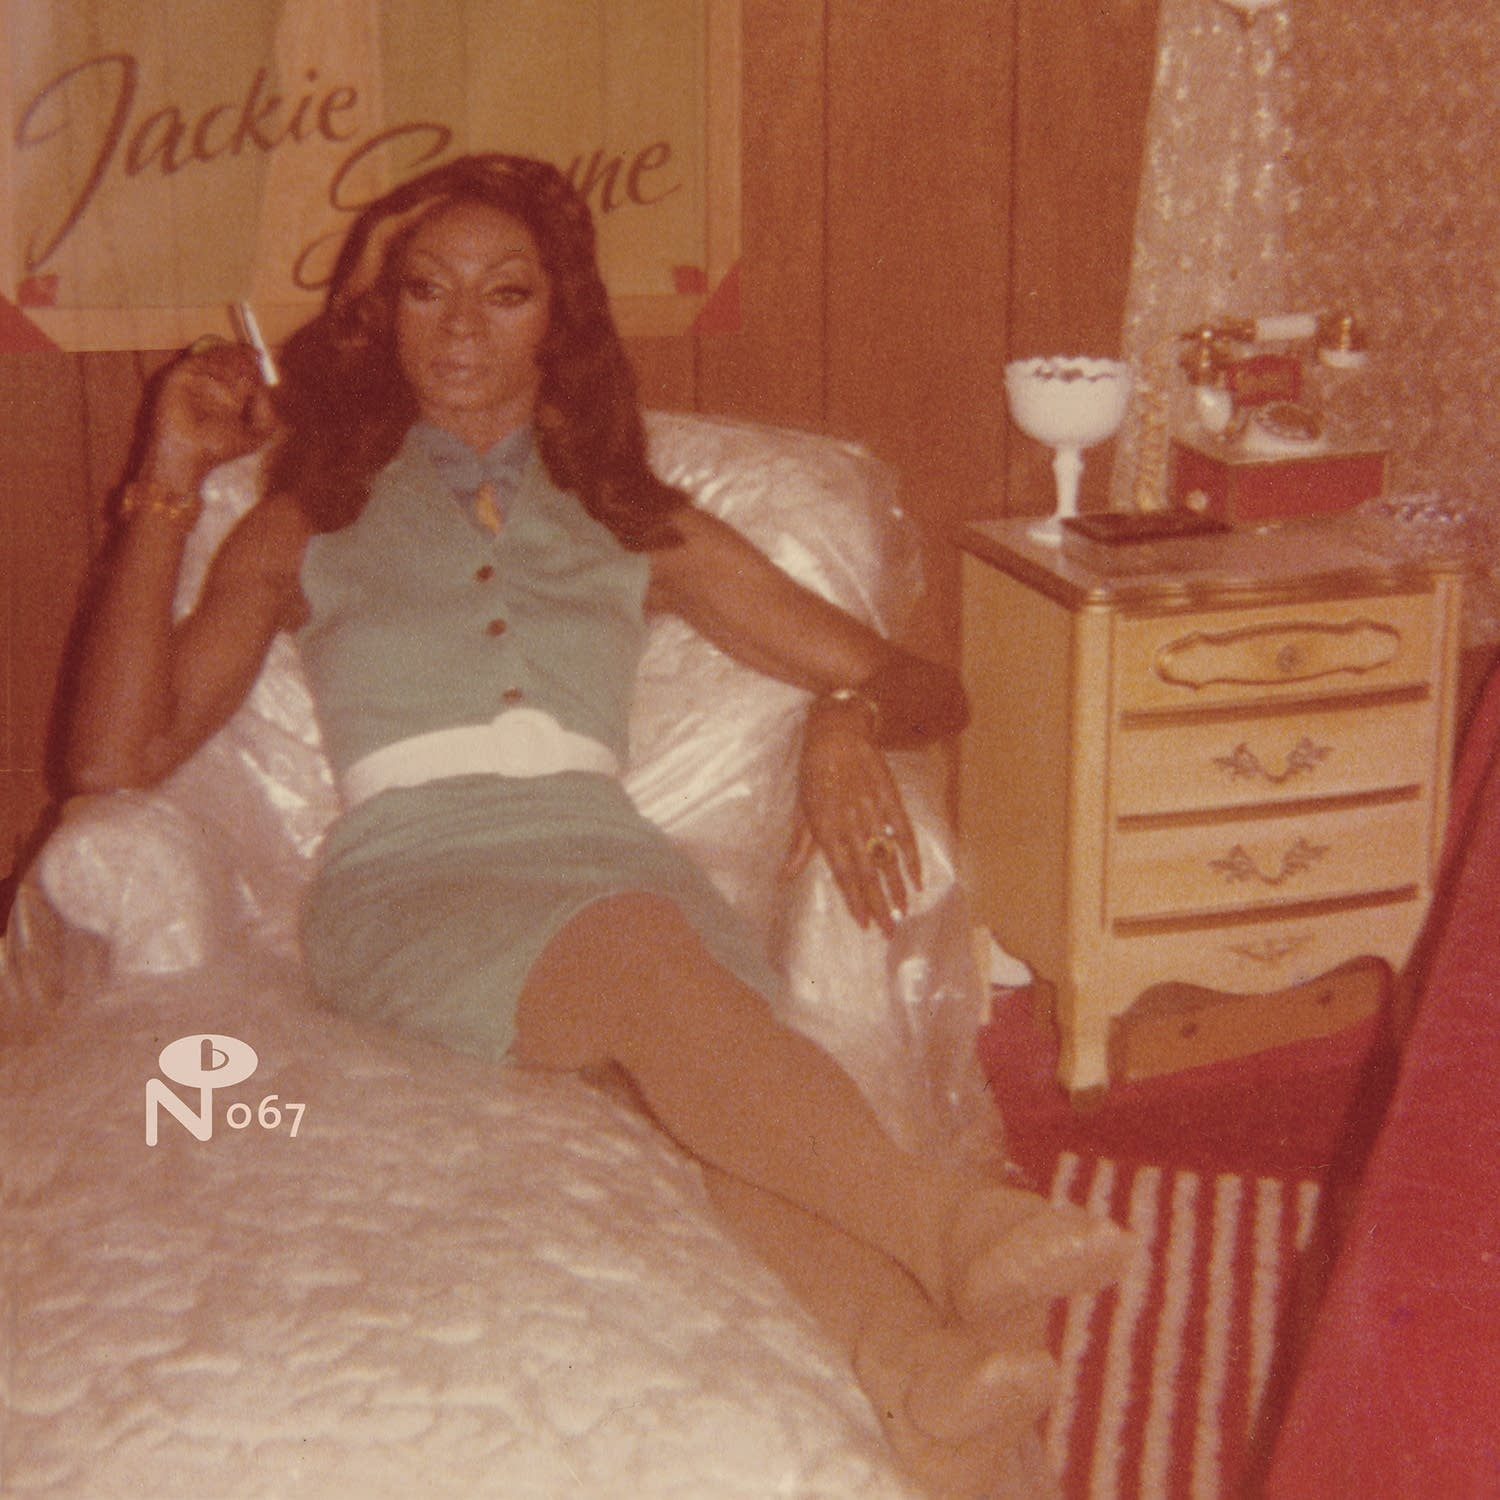 Jackie Shane, 'No Other Way'